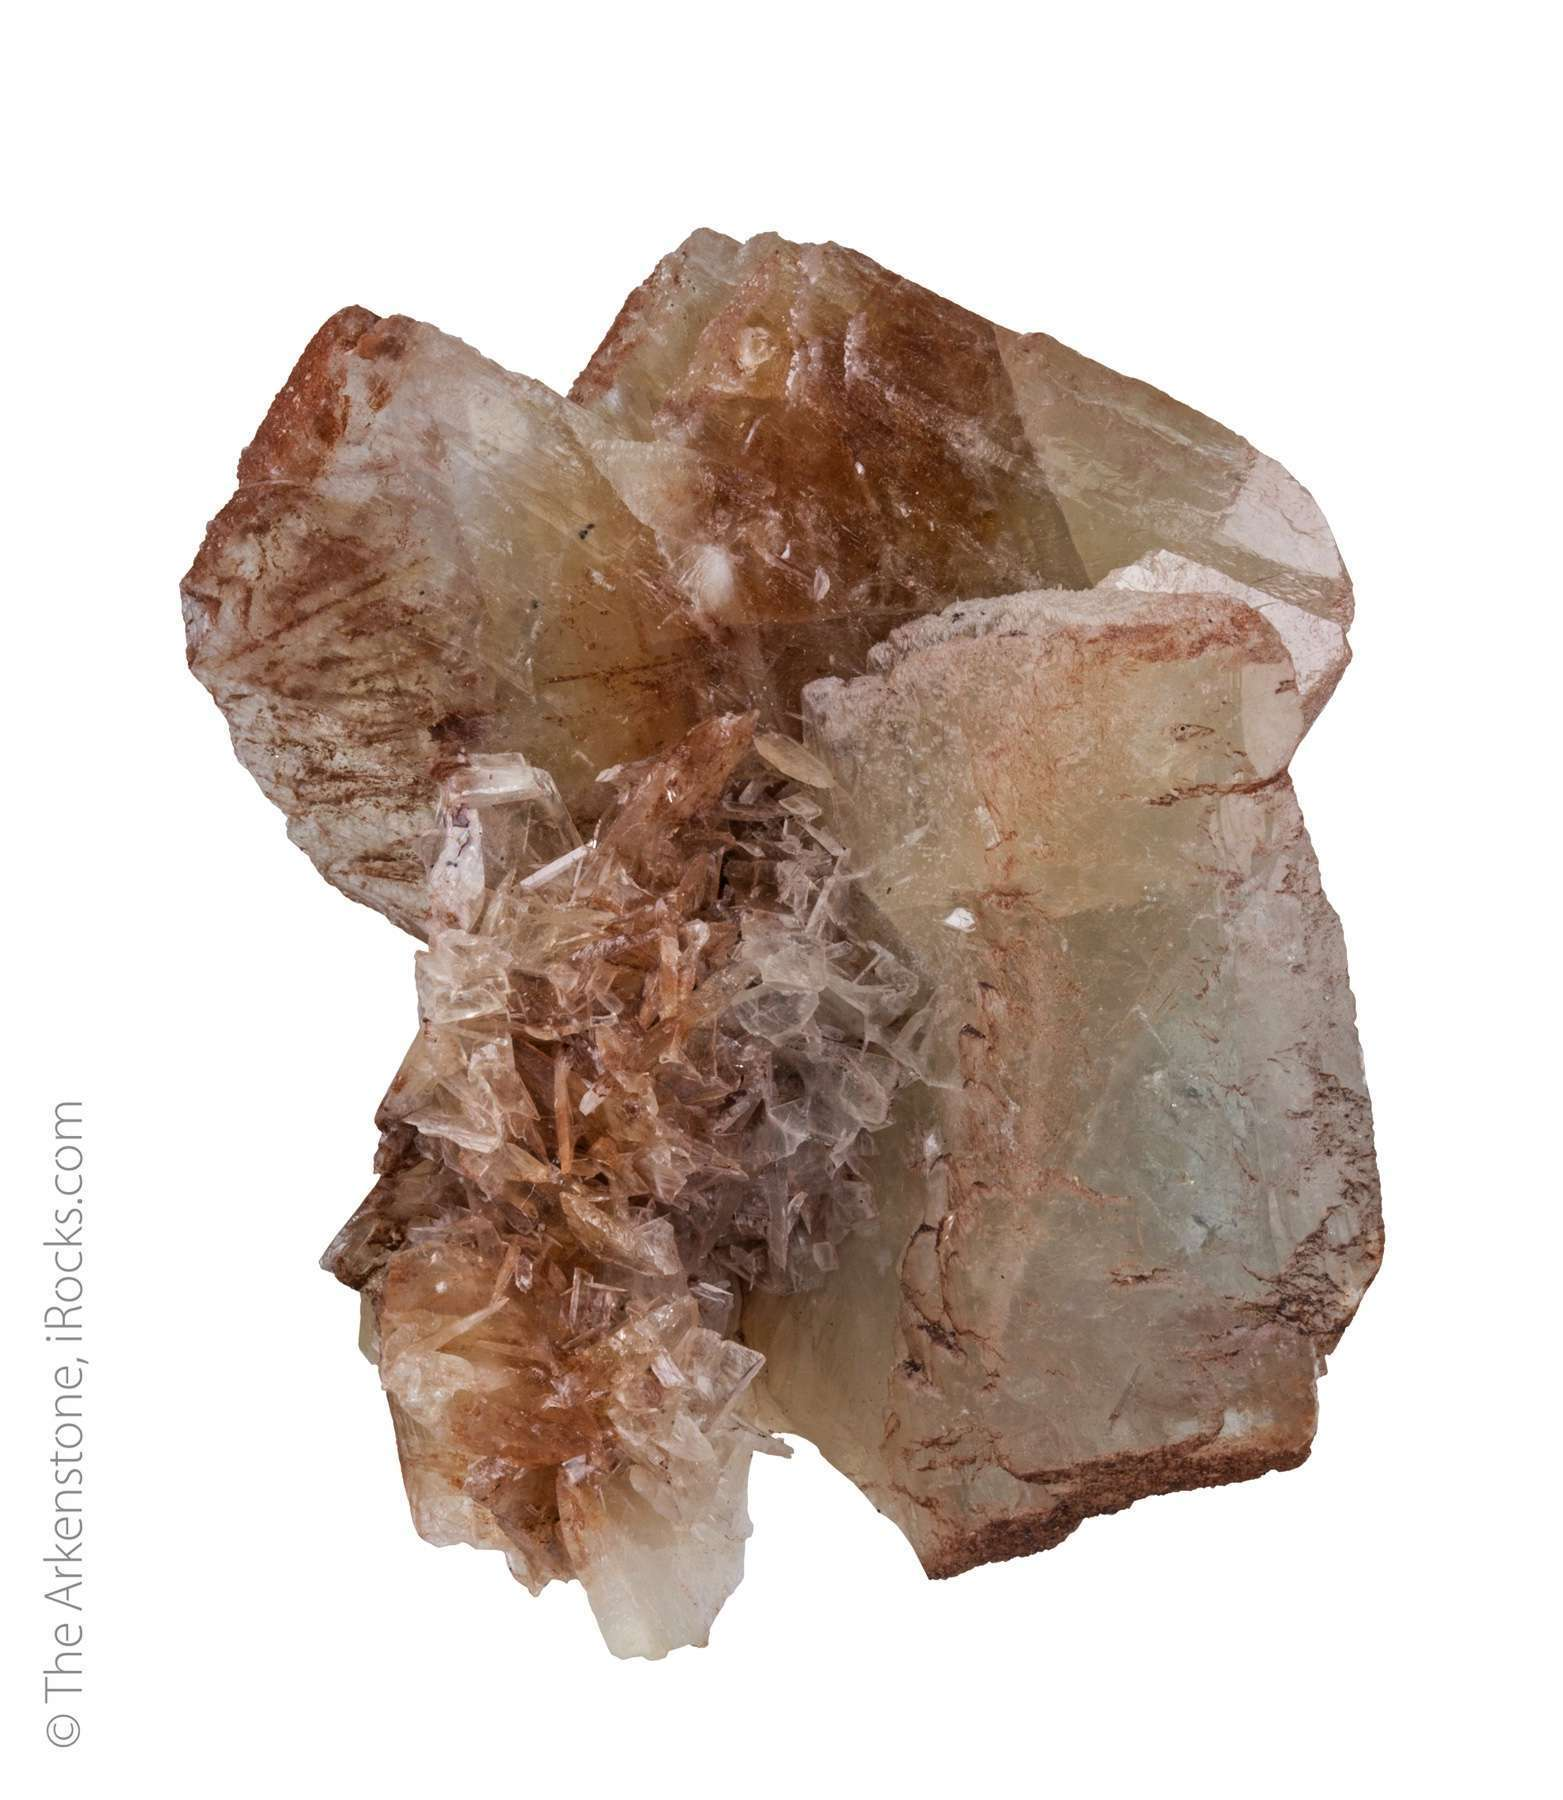 Three large tabular crystals 5 cm length lustrous translucent tan